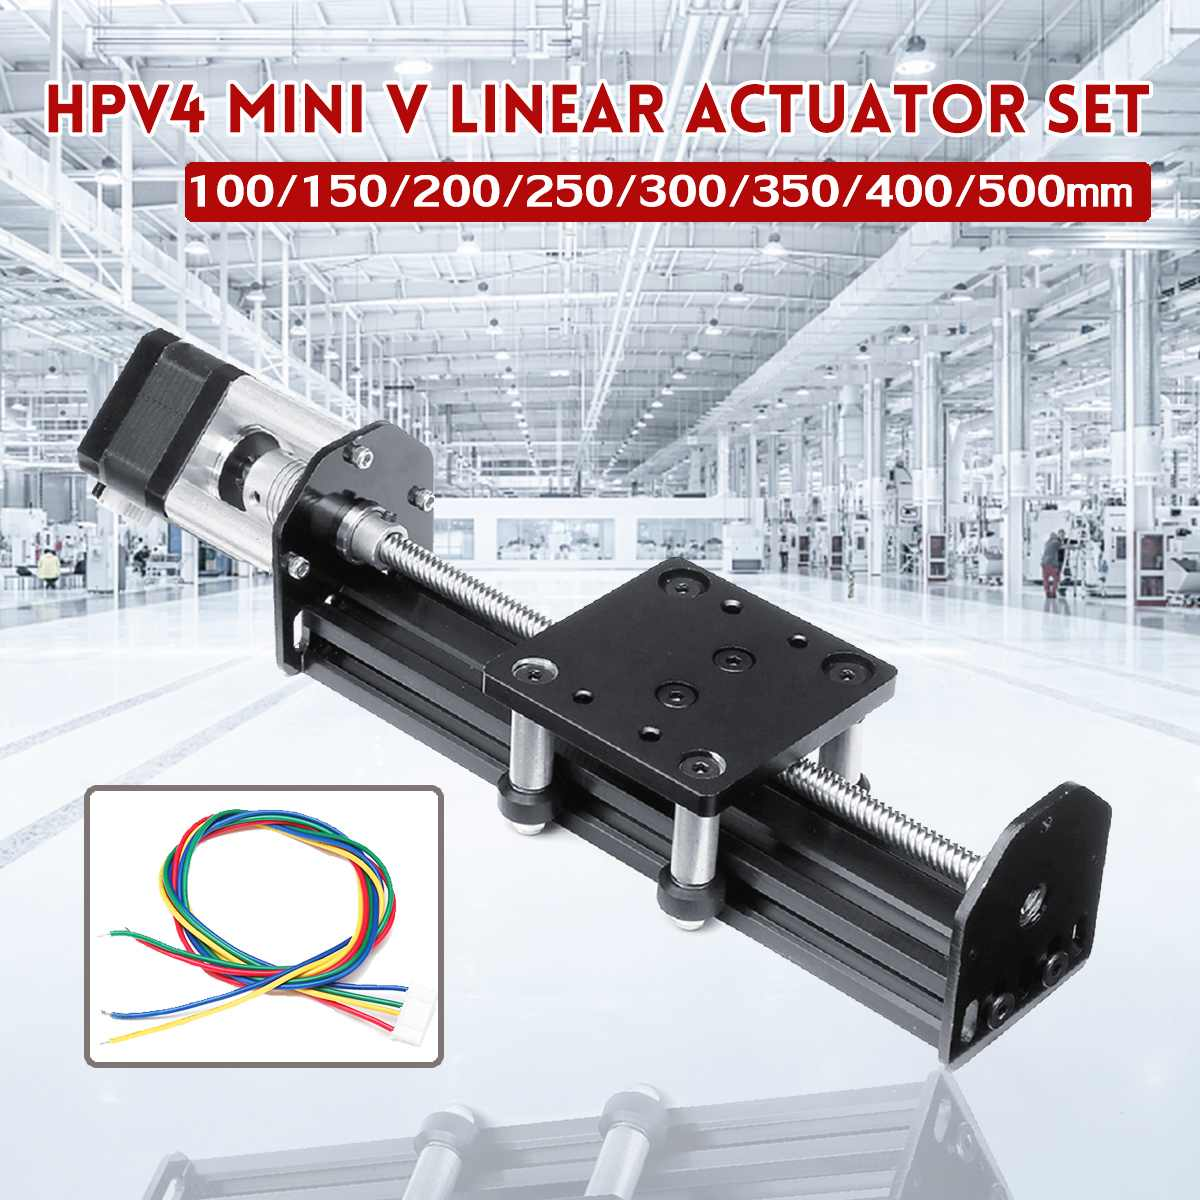 HPV4 Linear Guide Set Open Builds Mini V Linear Actuator 100-500mm Linear Module With 17HS3401S Stepper Motor